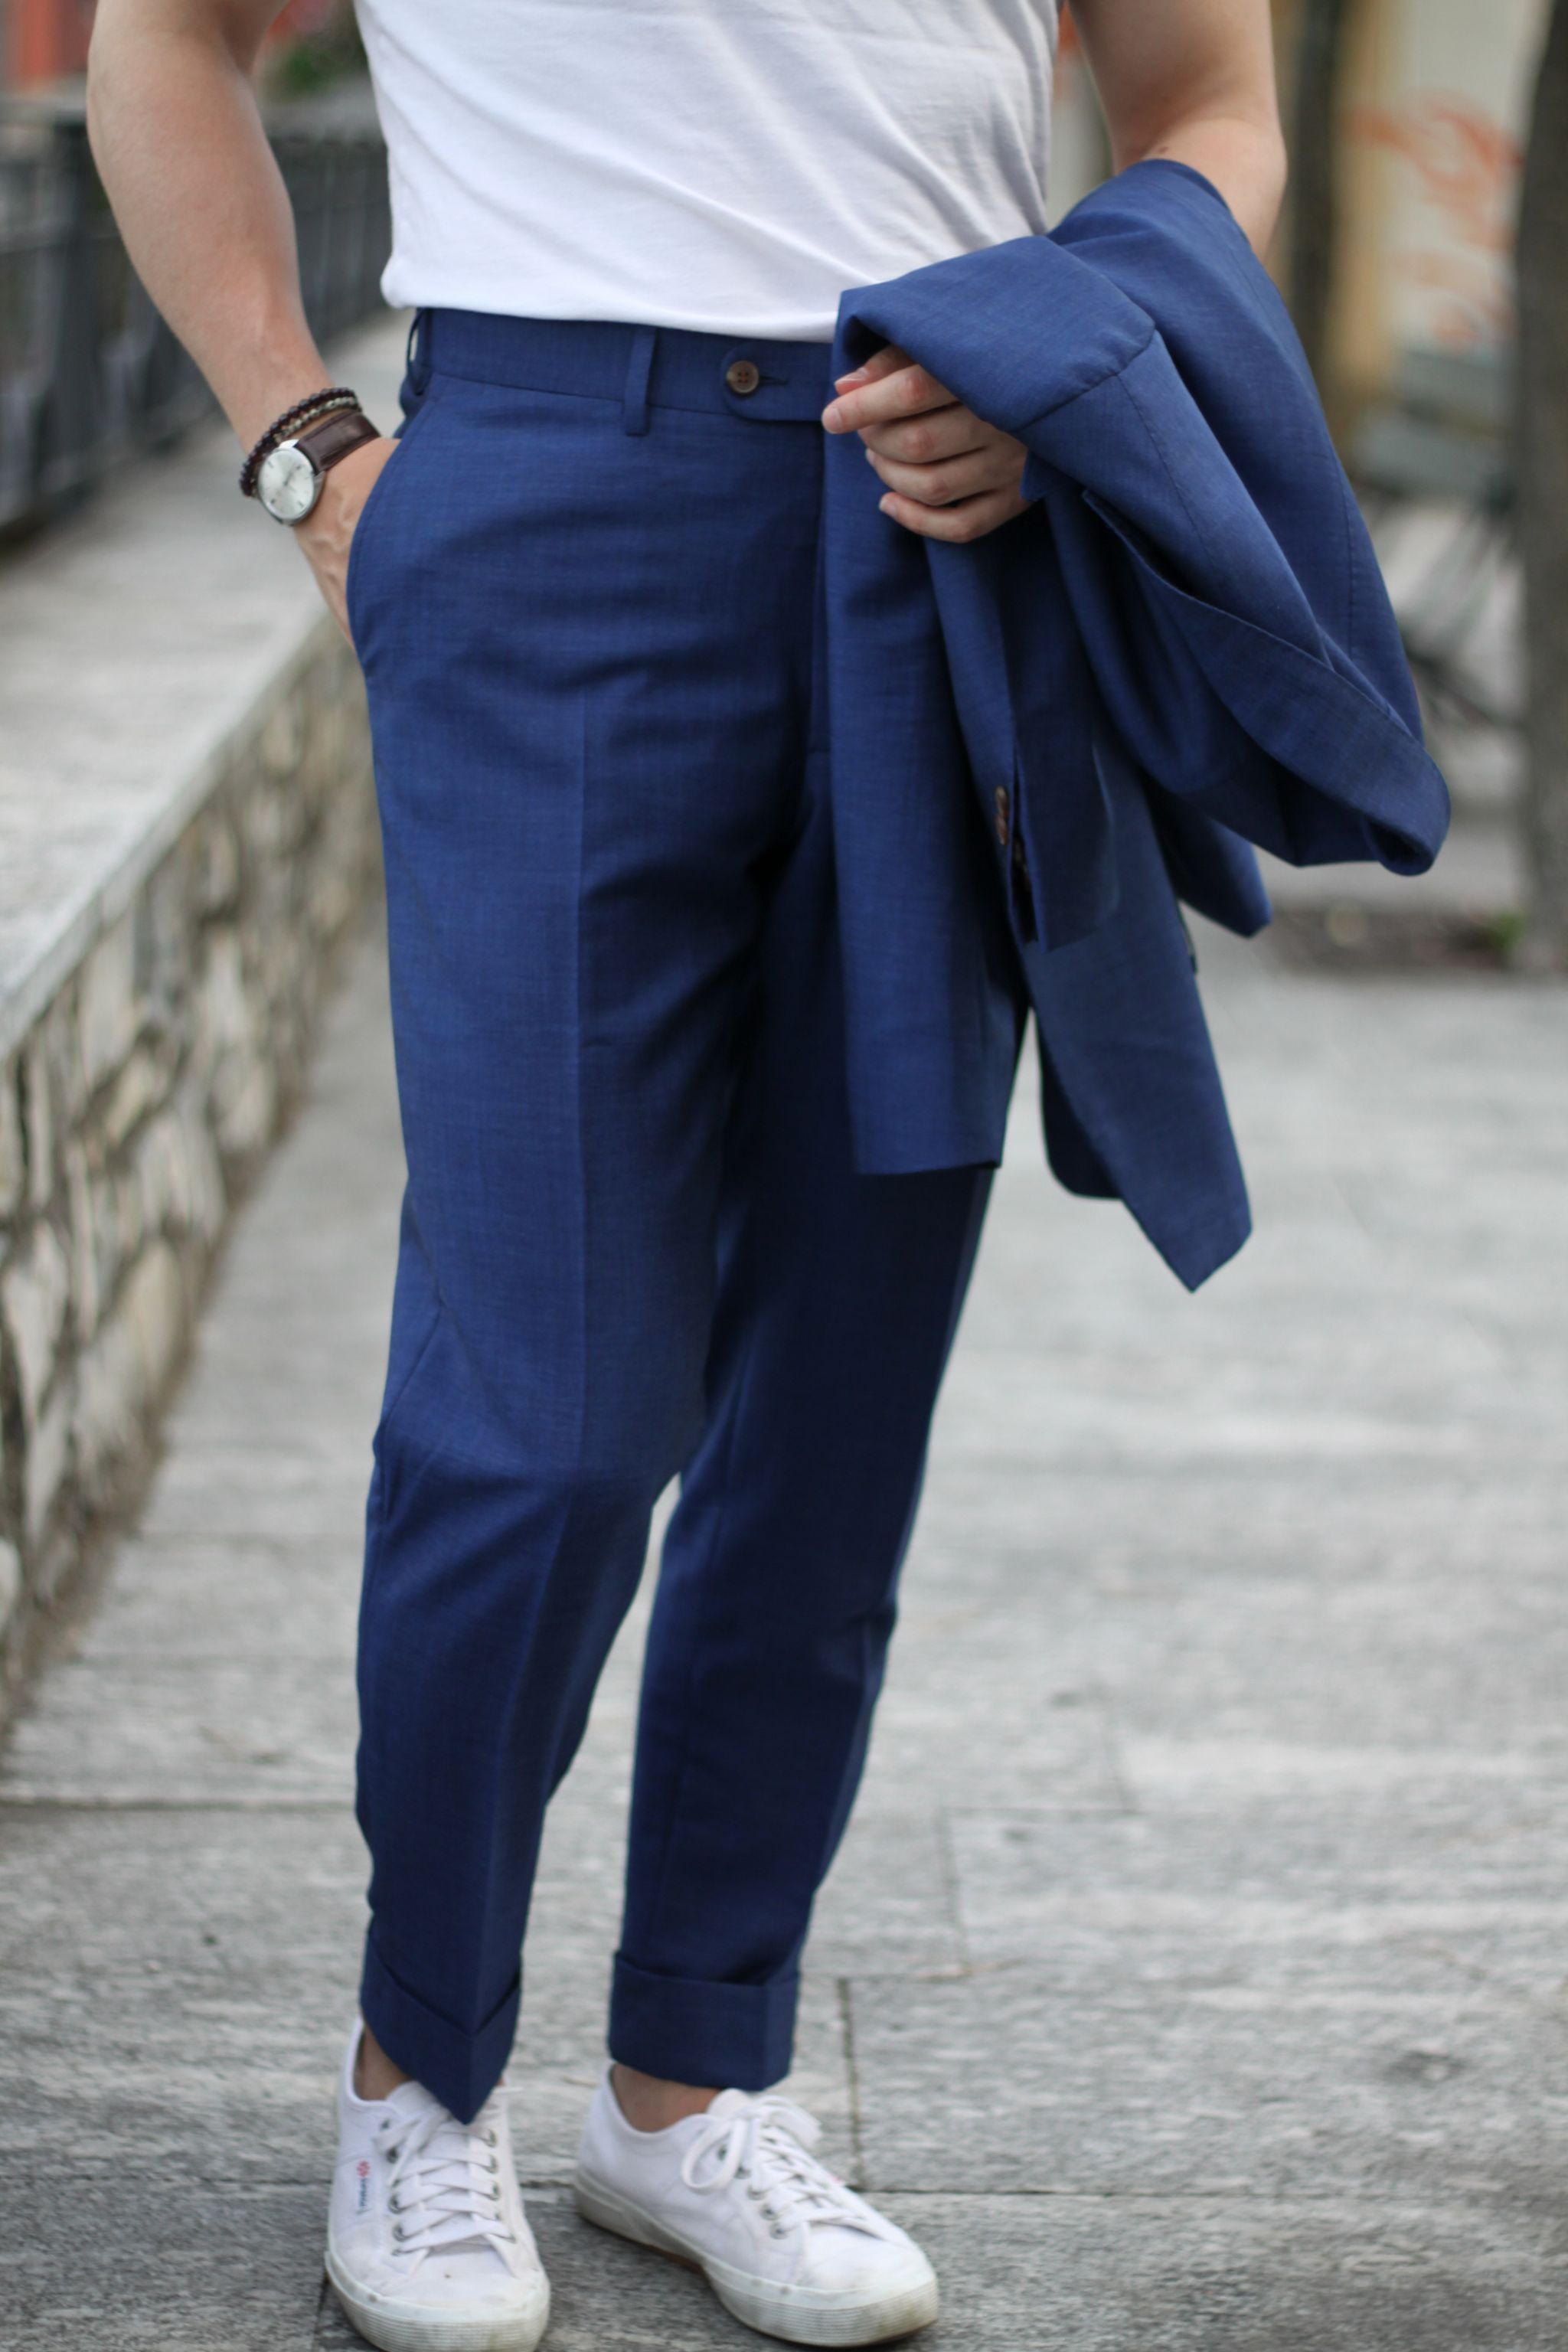 Royal blue suit - wearing t-shirt with suit and sneakers